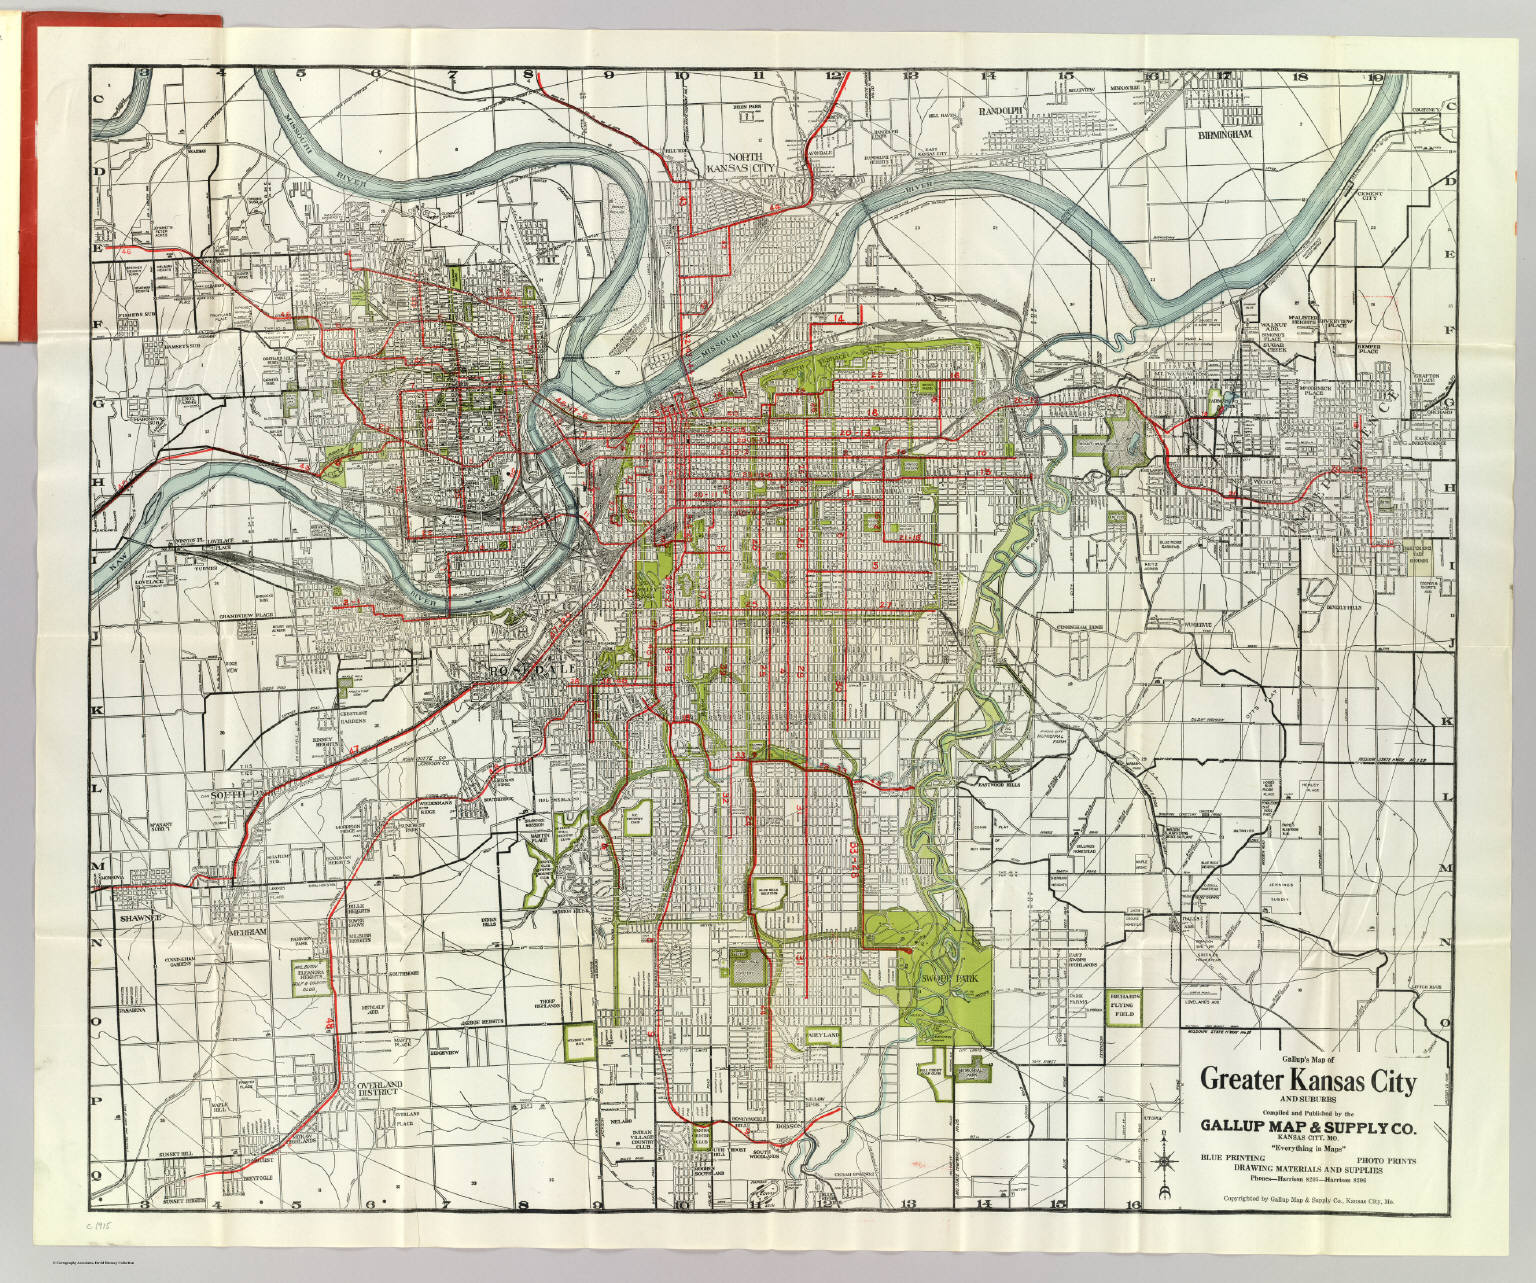 Greater Kansas City. / Gallup Map & Supply Company / 1920